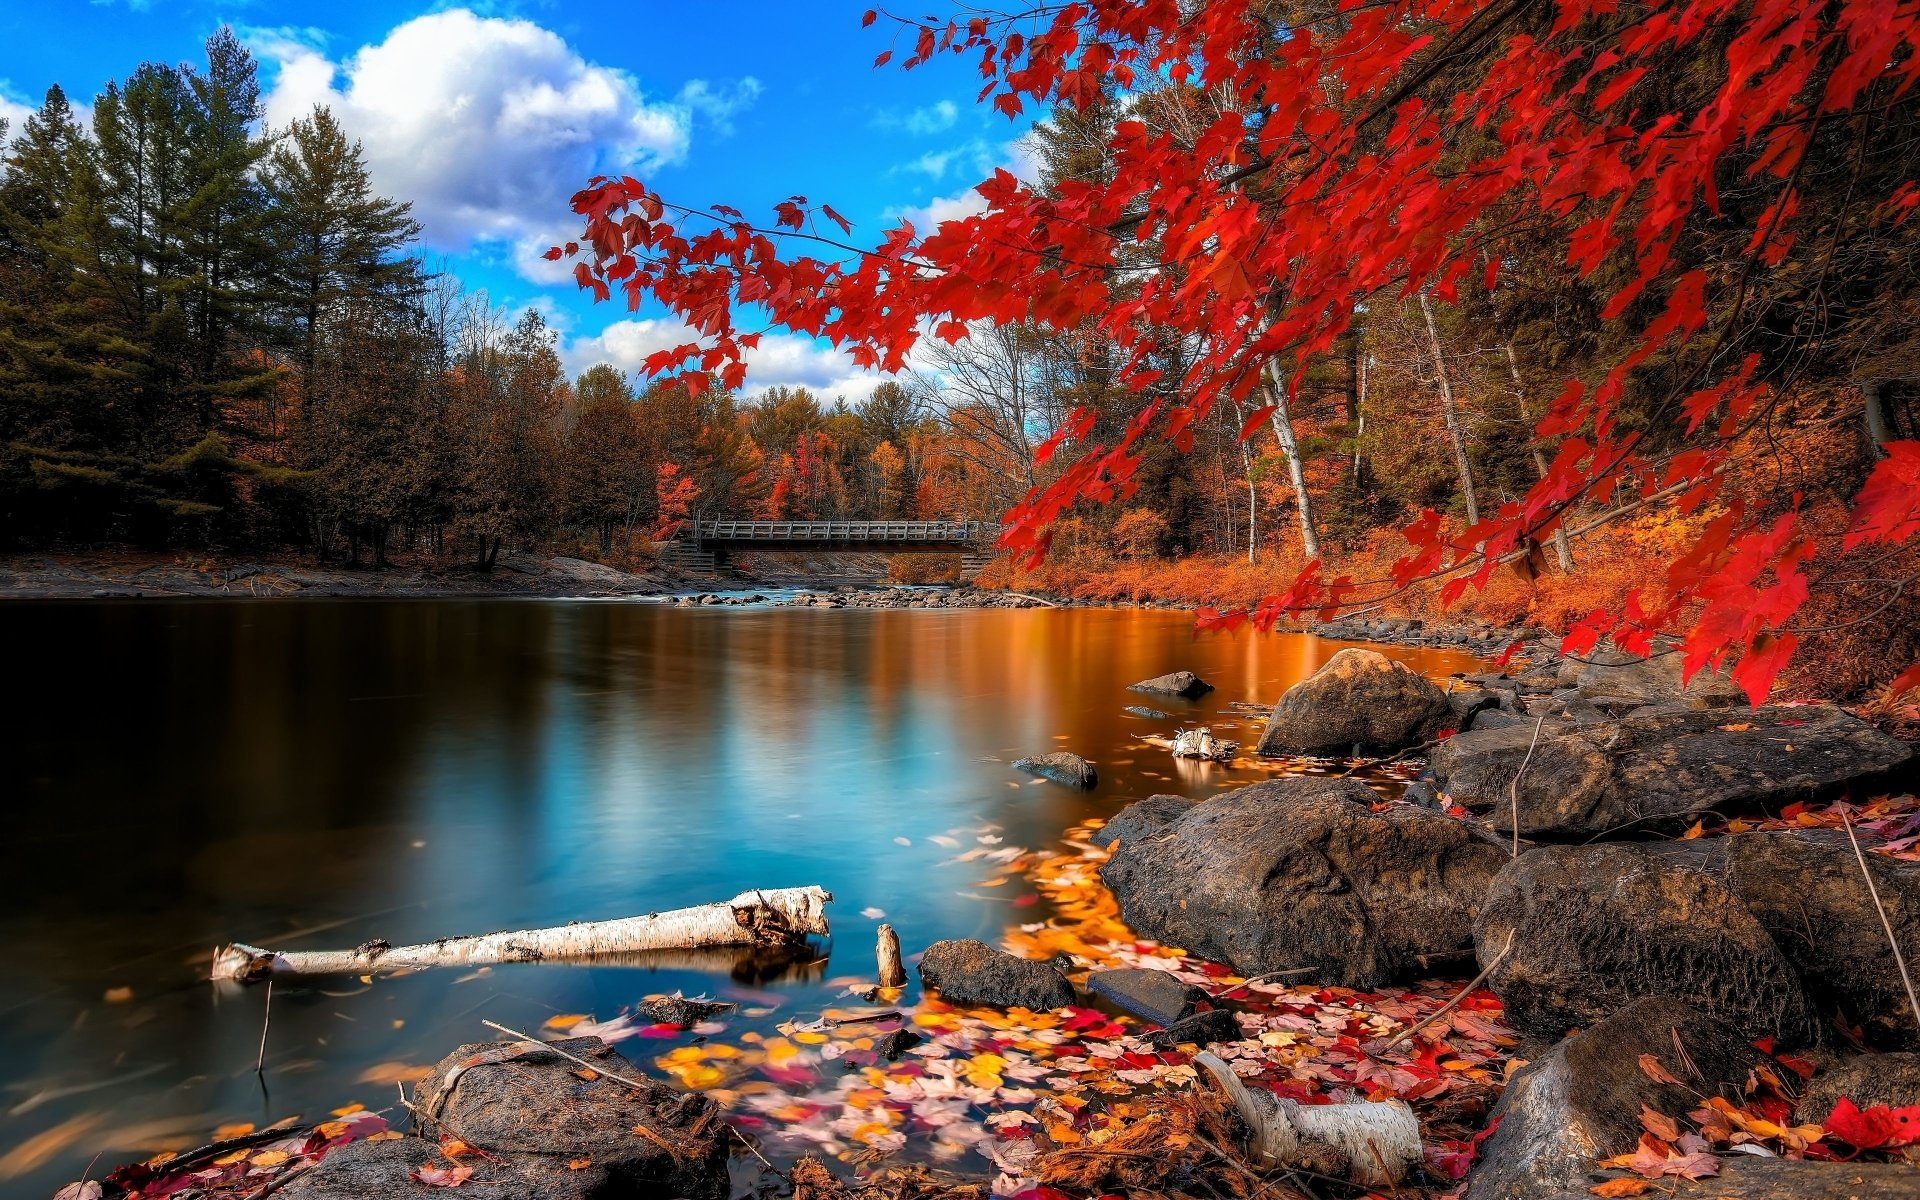 855 Fall Hd Wallpapers Background Images Wallpaper Abyss